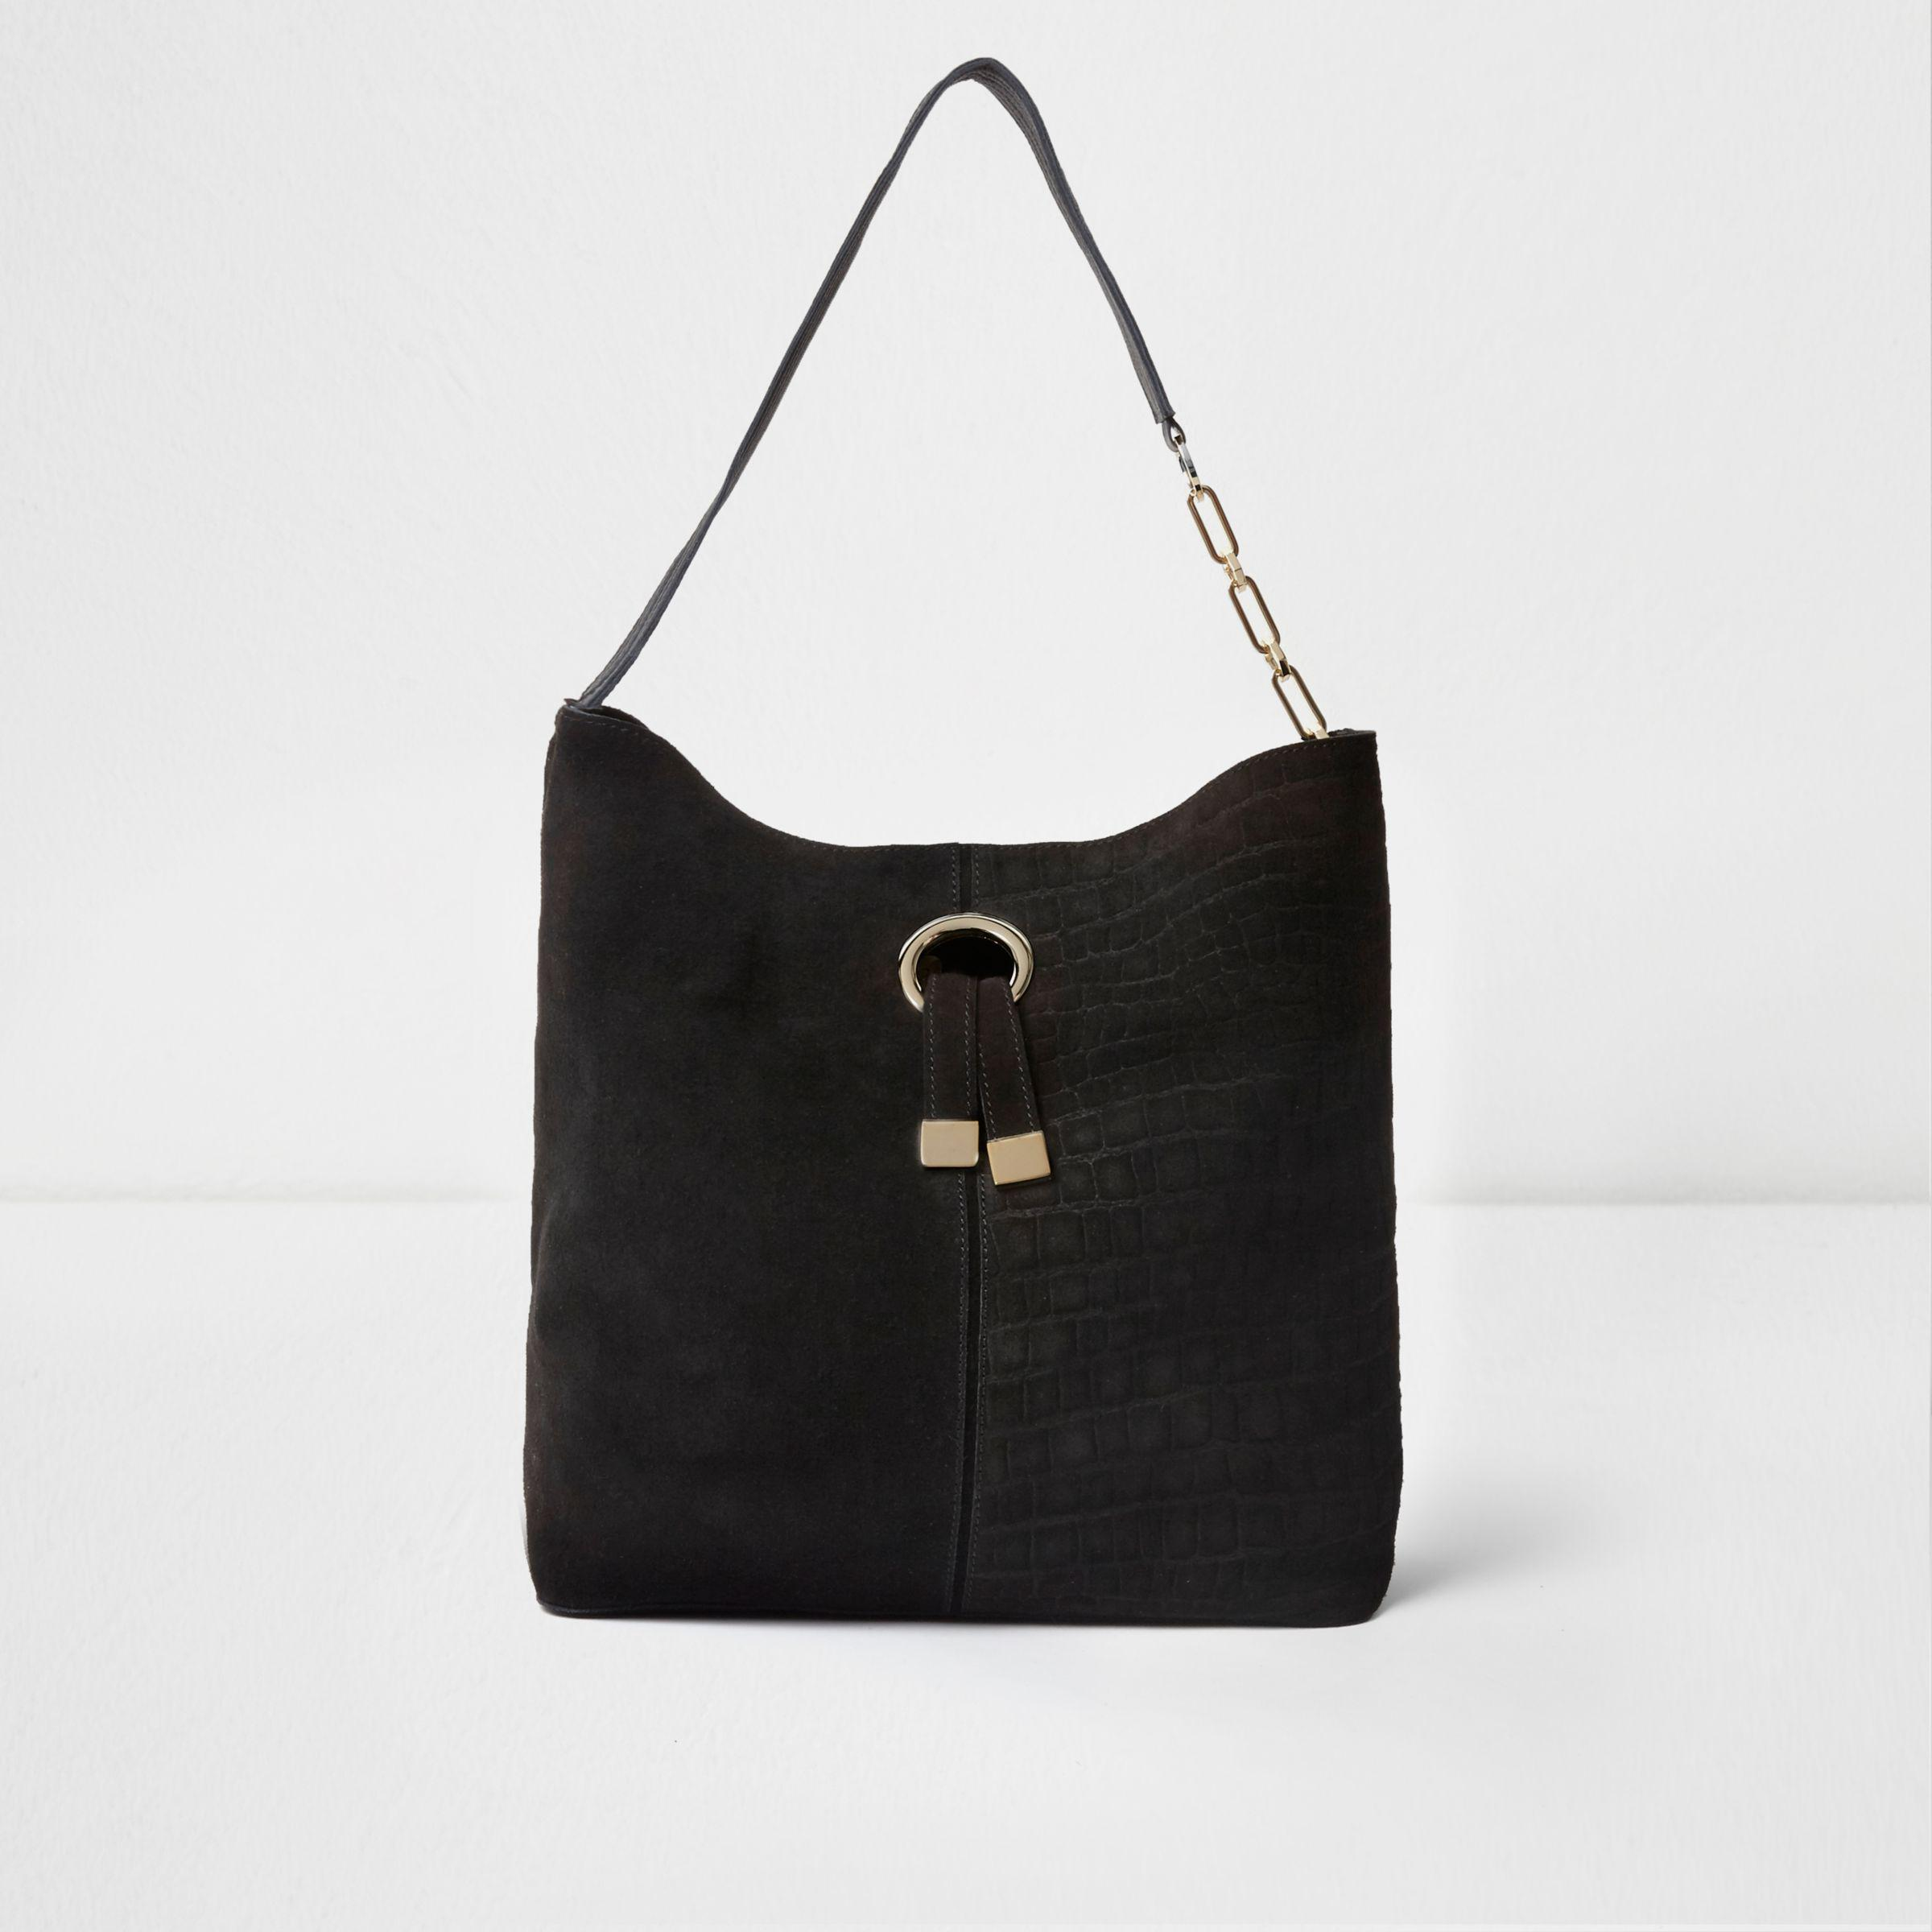 ef1c2445b1 Lyst - River Island Black Suede Ring Front Underarm Slouch Bag in Black